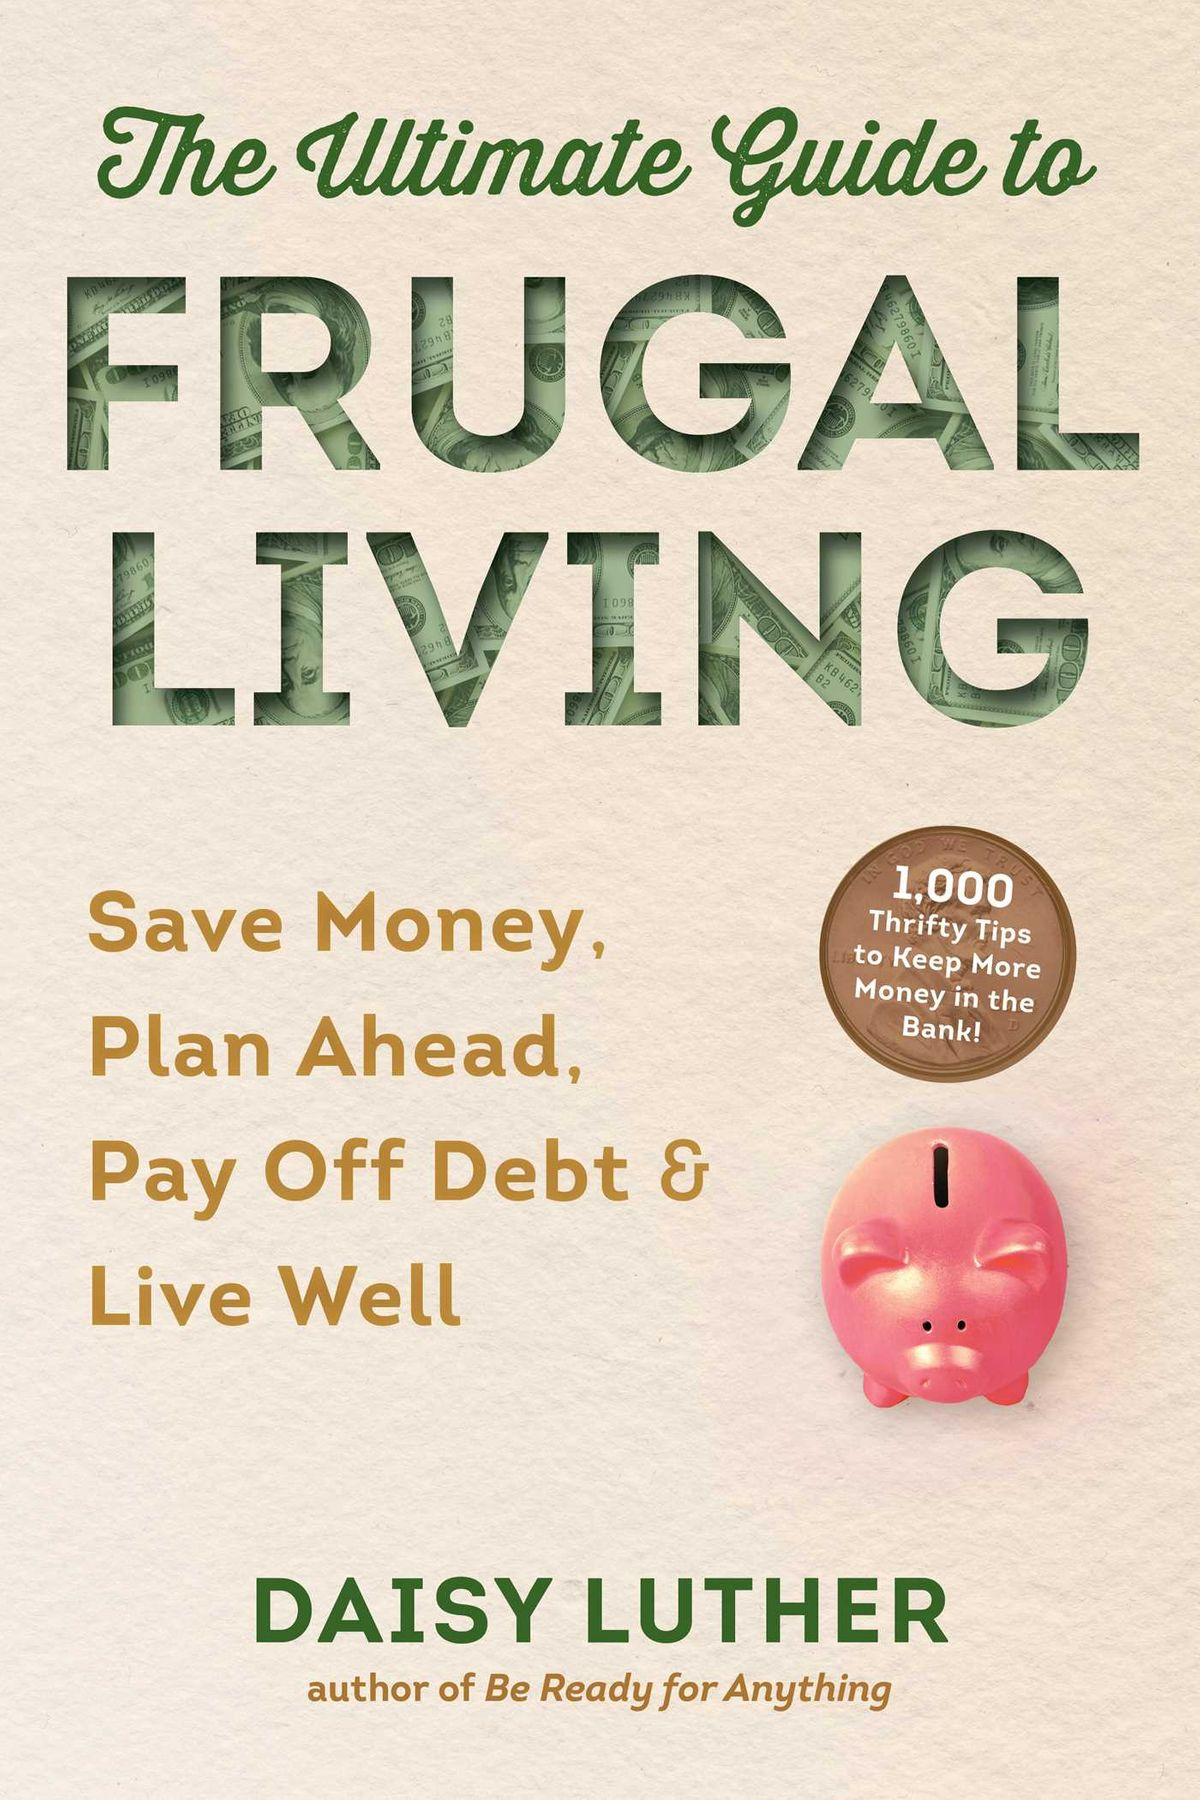 the-ultimate-guide-to-frugal-living